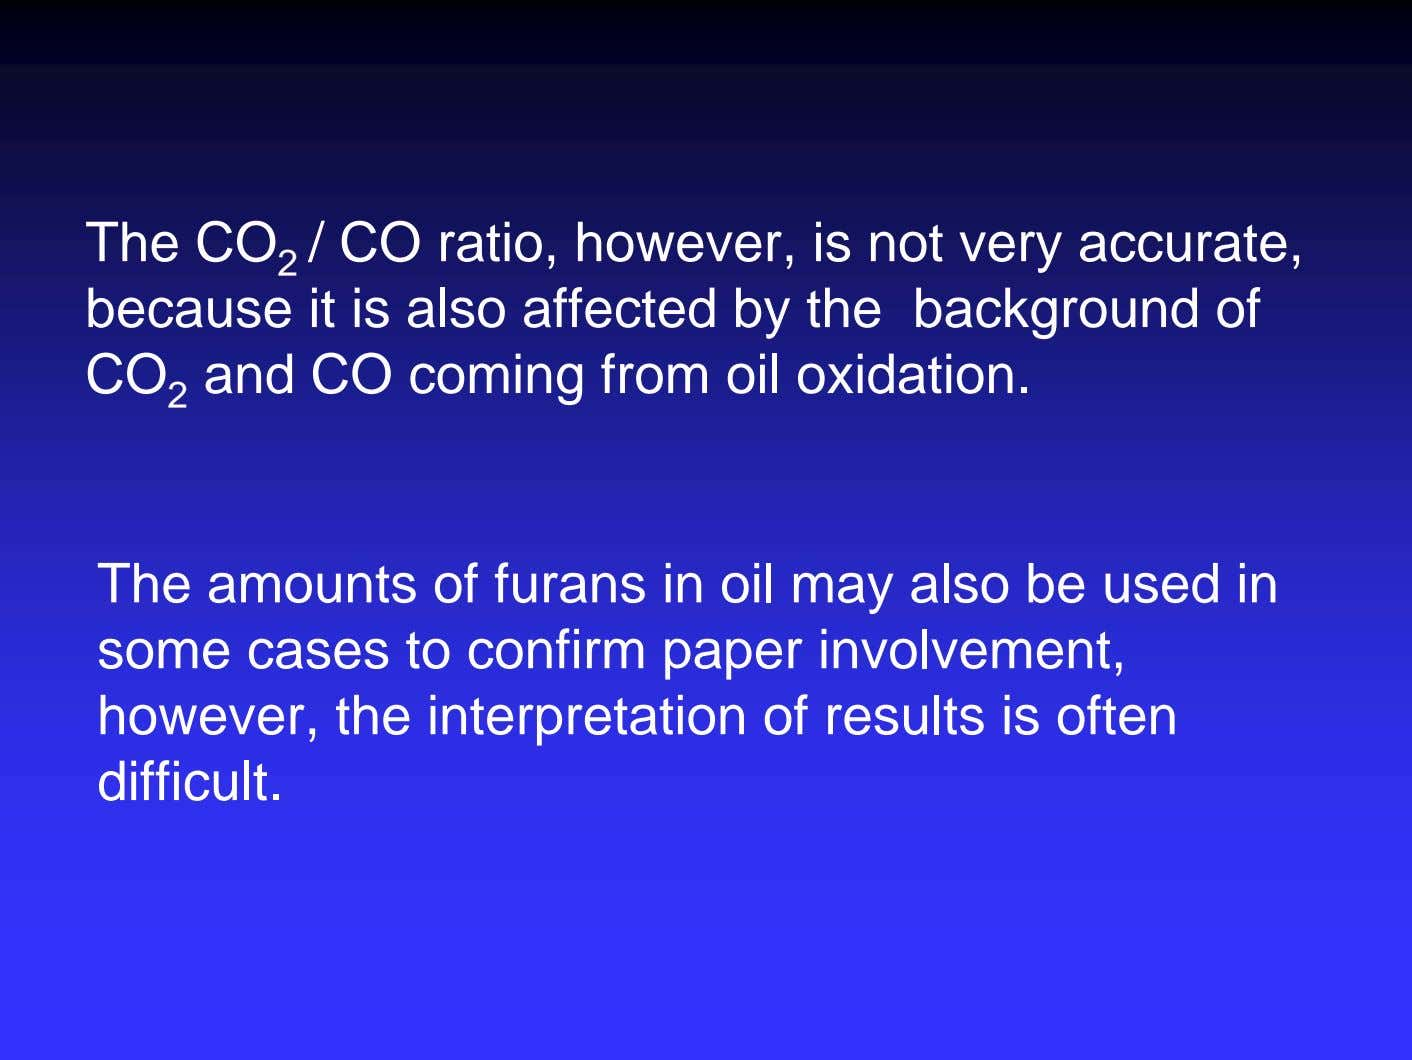 The CO 2 / CO ratio, however, is not very accurate, because it is also